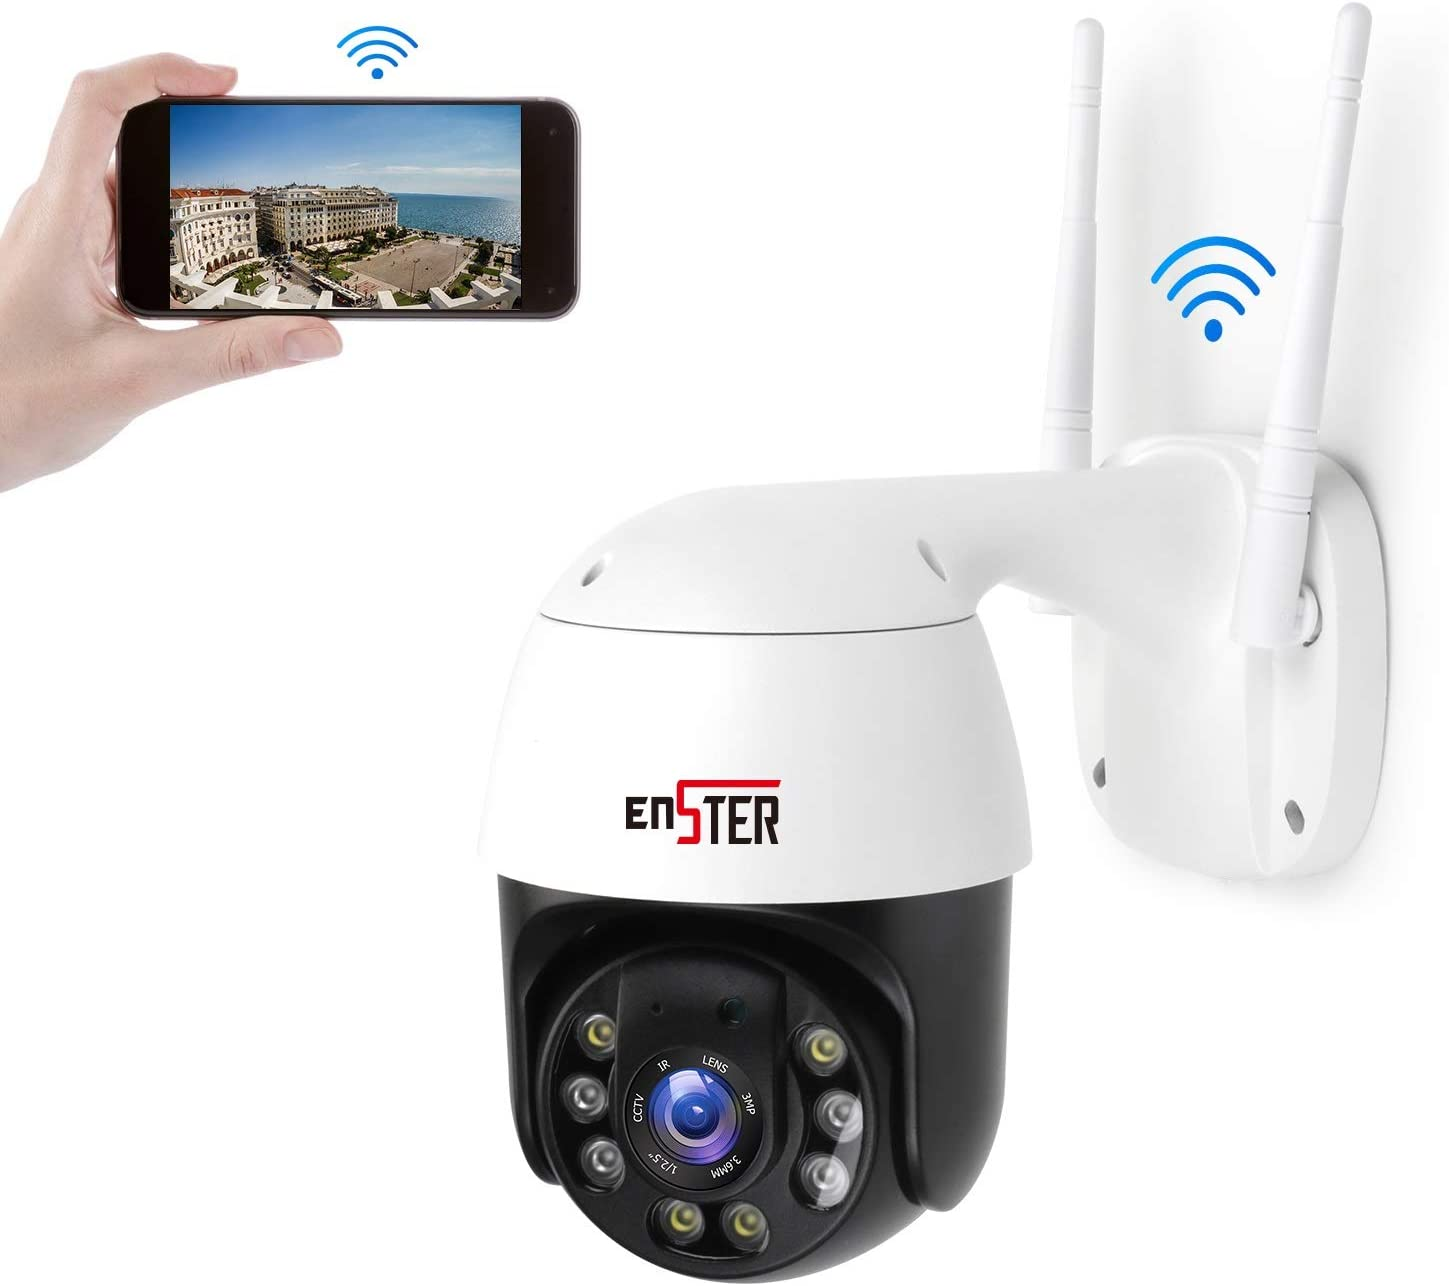 ENSTER Metal PTZ WiFi Security Online limited product Camera New sales Tilt Outdoor Pan 1080P 4X